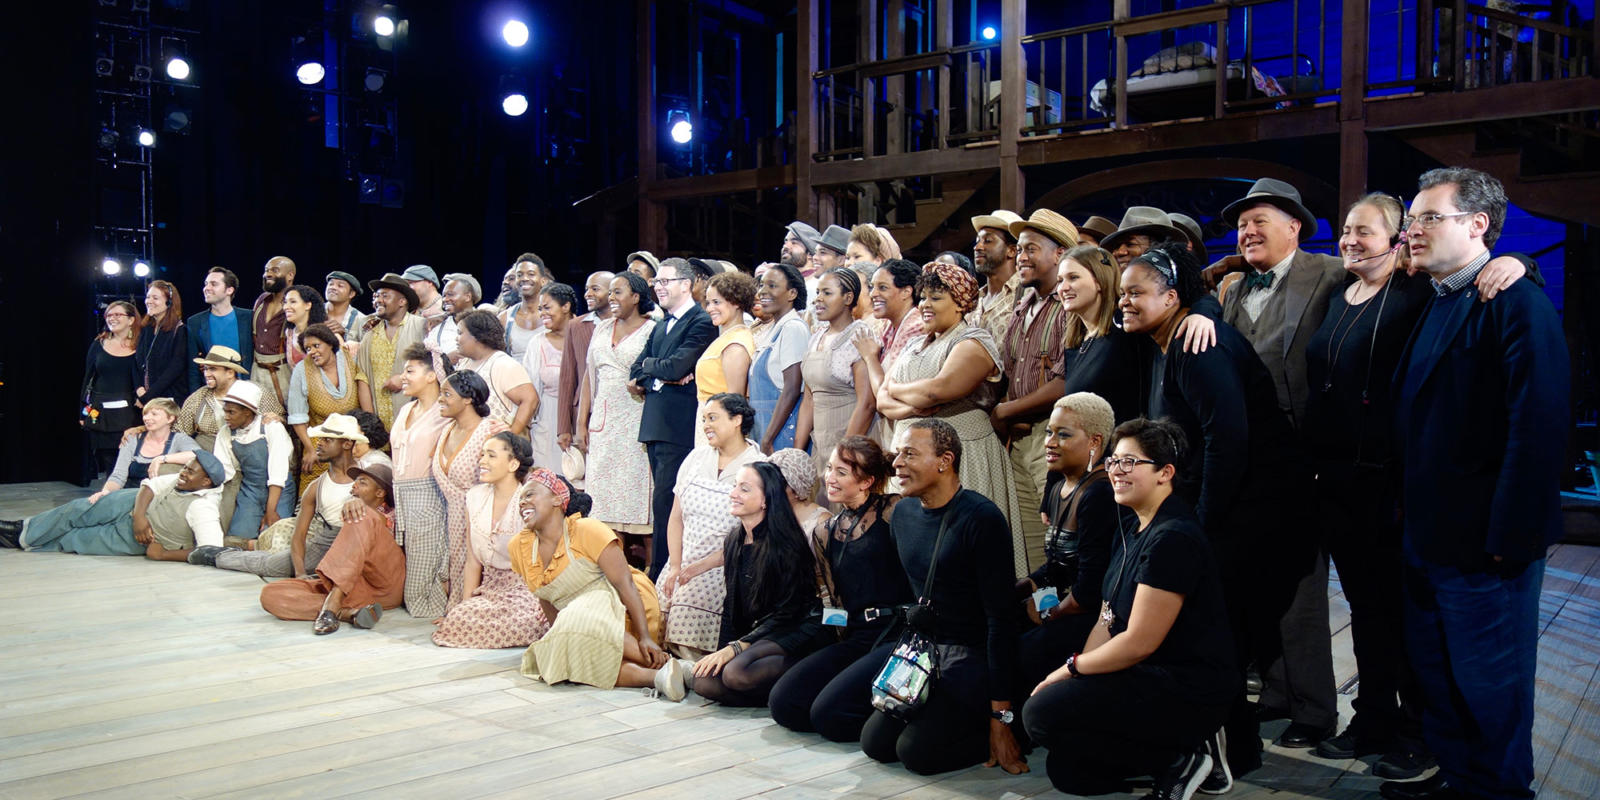 ENO Porgy and Bess: cast and crew posing for a group photo